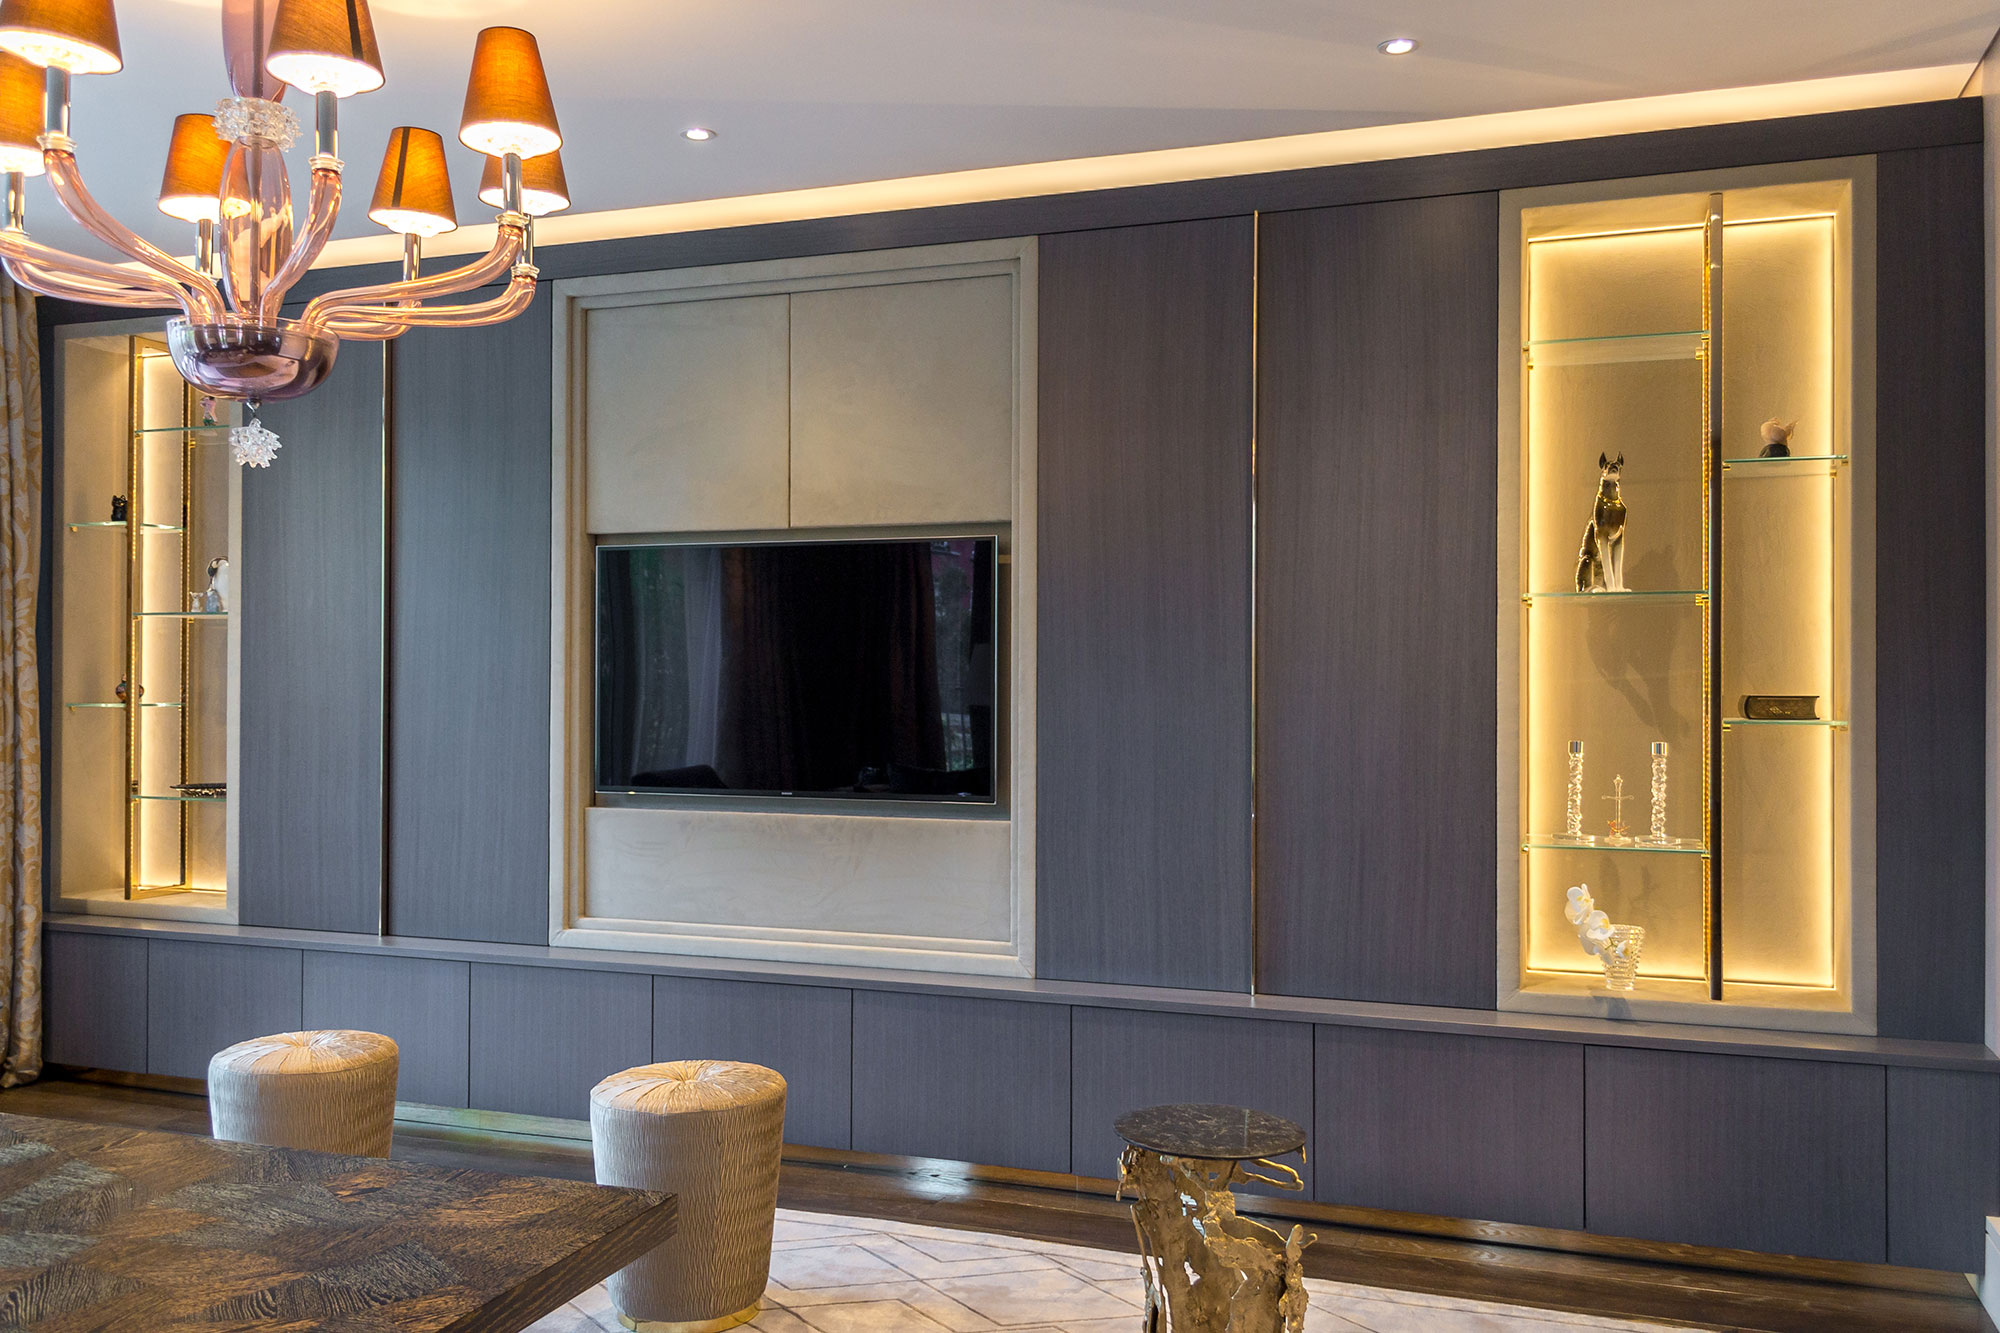 Bespoke fitted furniture wardrobes london for Bespoke kitchen cabinets